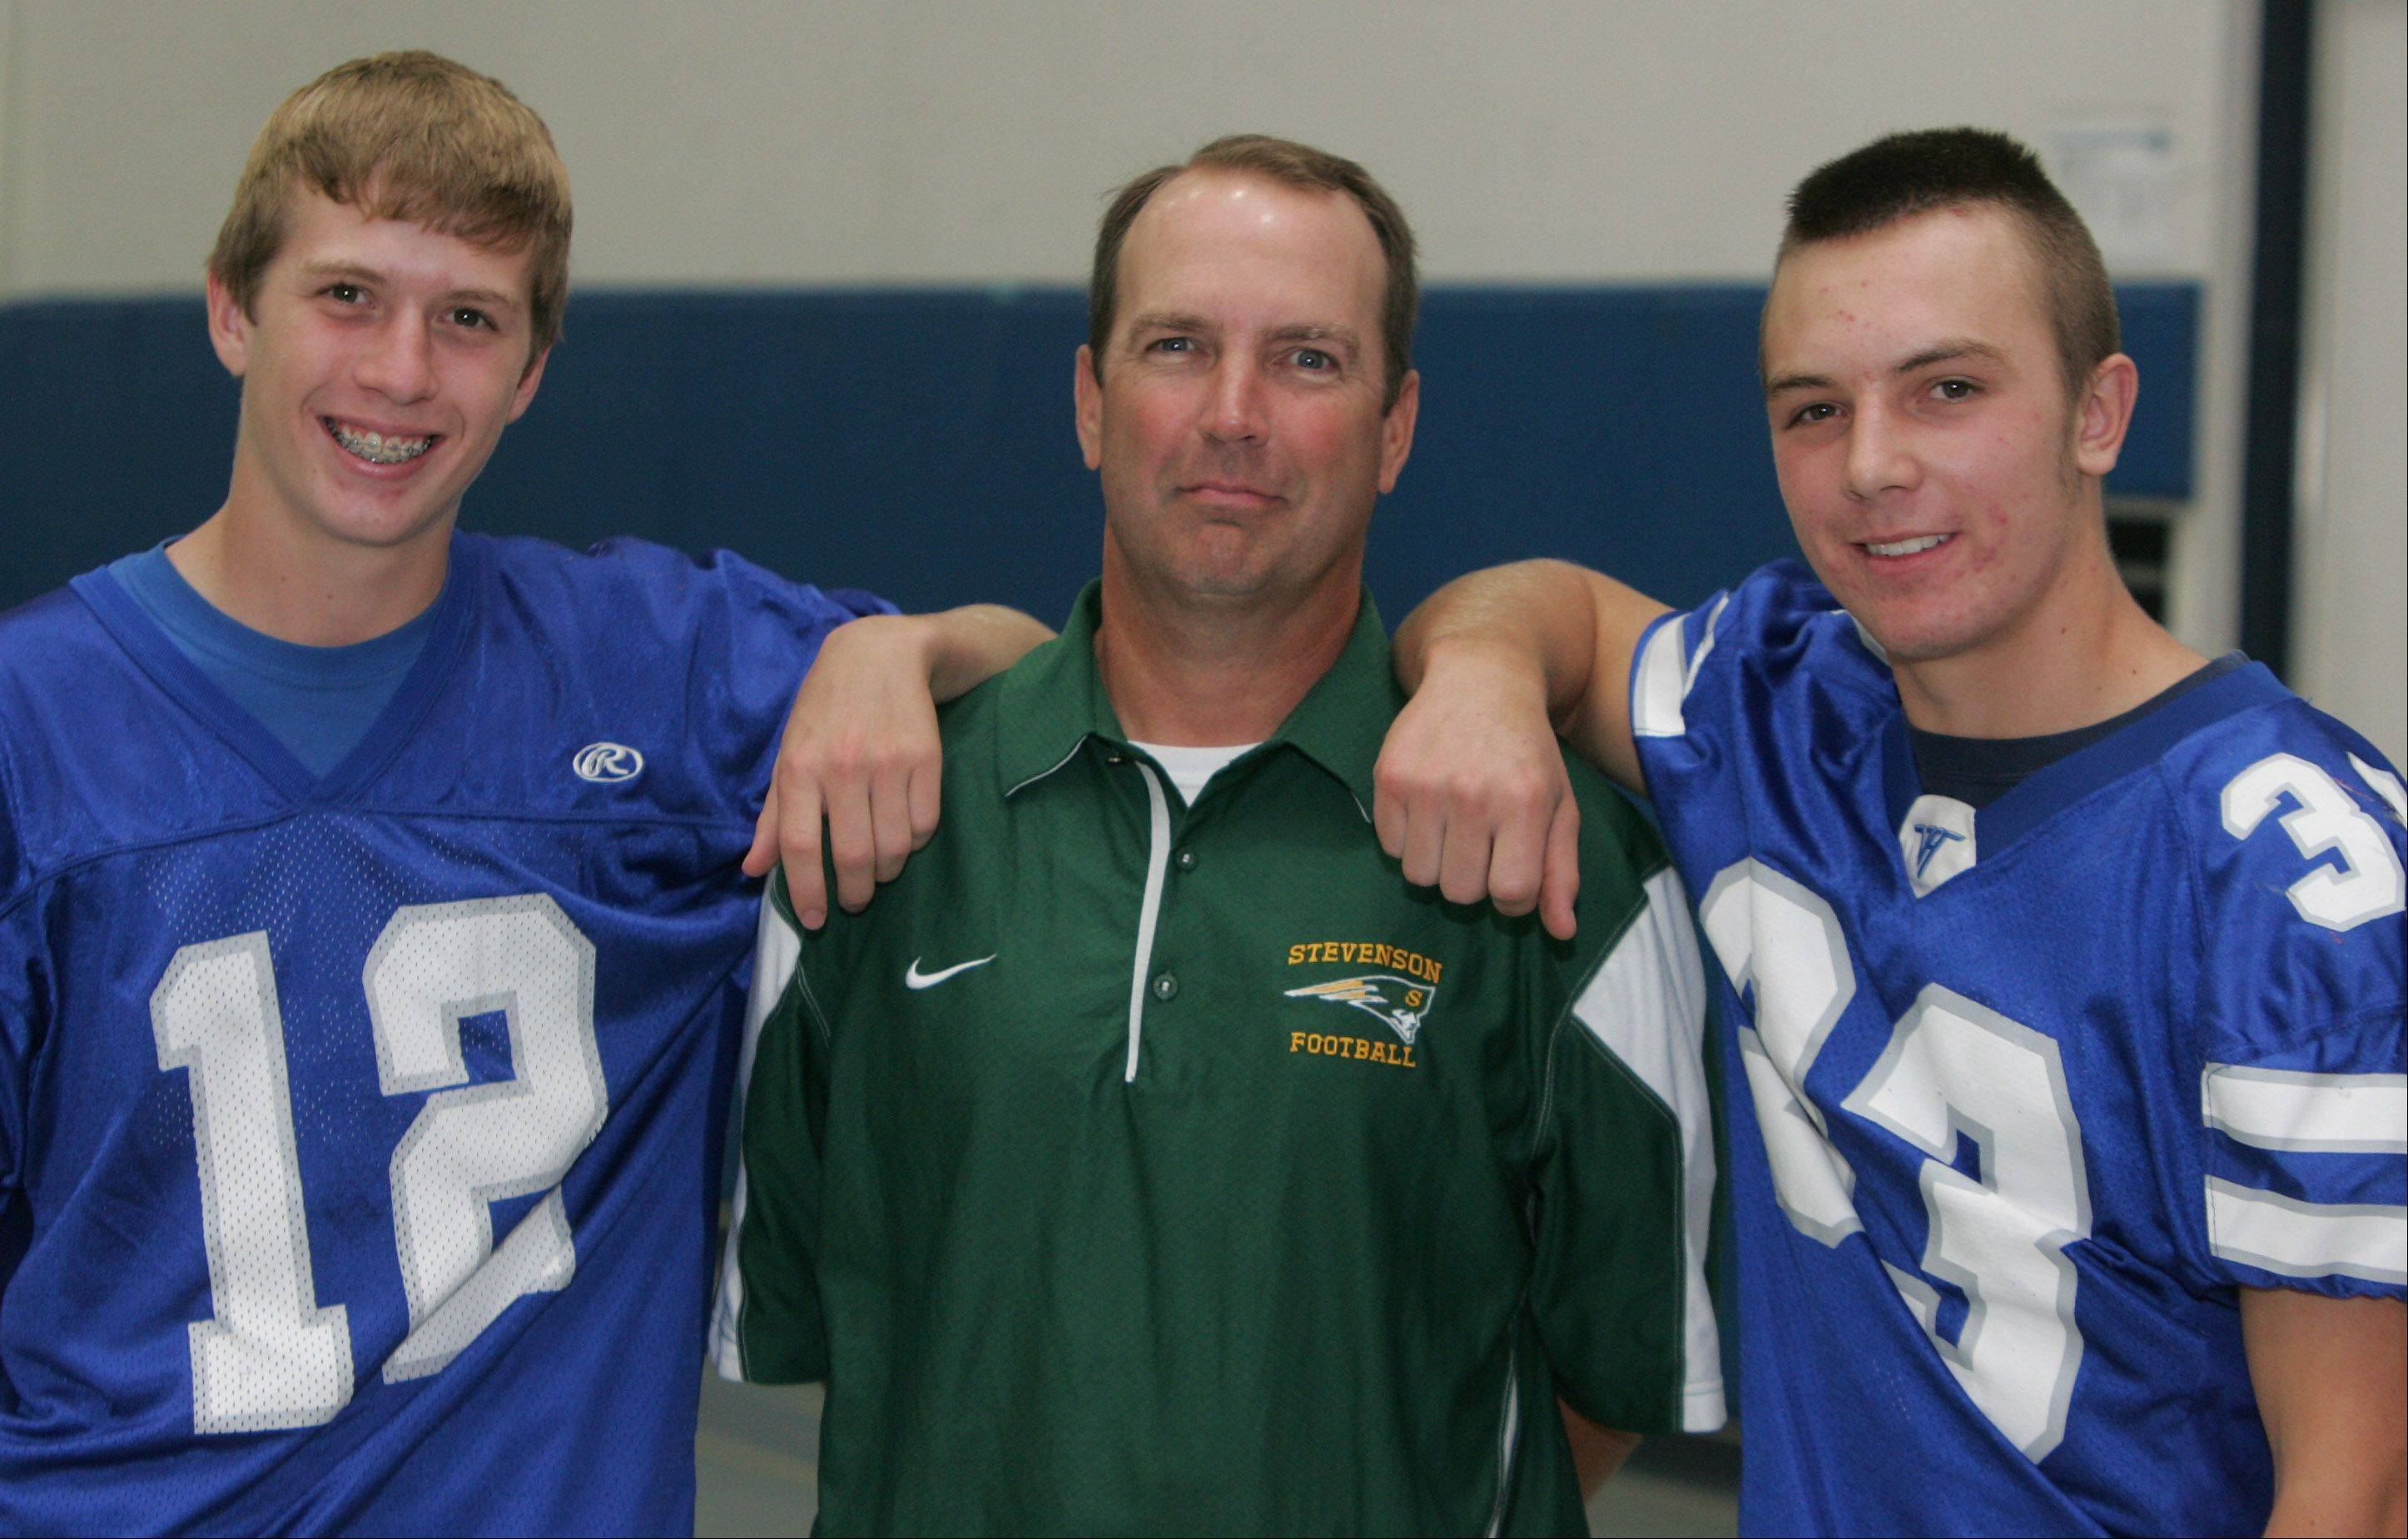 Stevenson football coach Bill McNamara, center, with his sons Connor (12) and Dylan (33), who play for Vernon Hills.